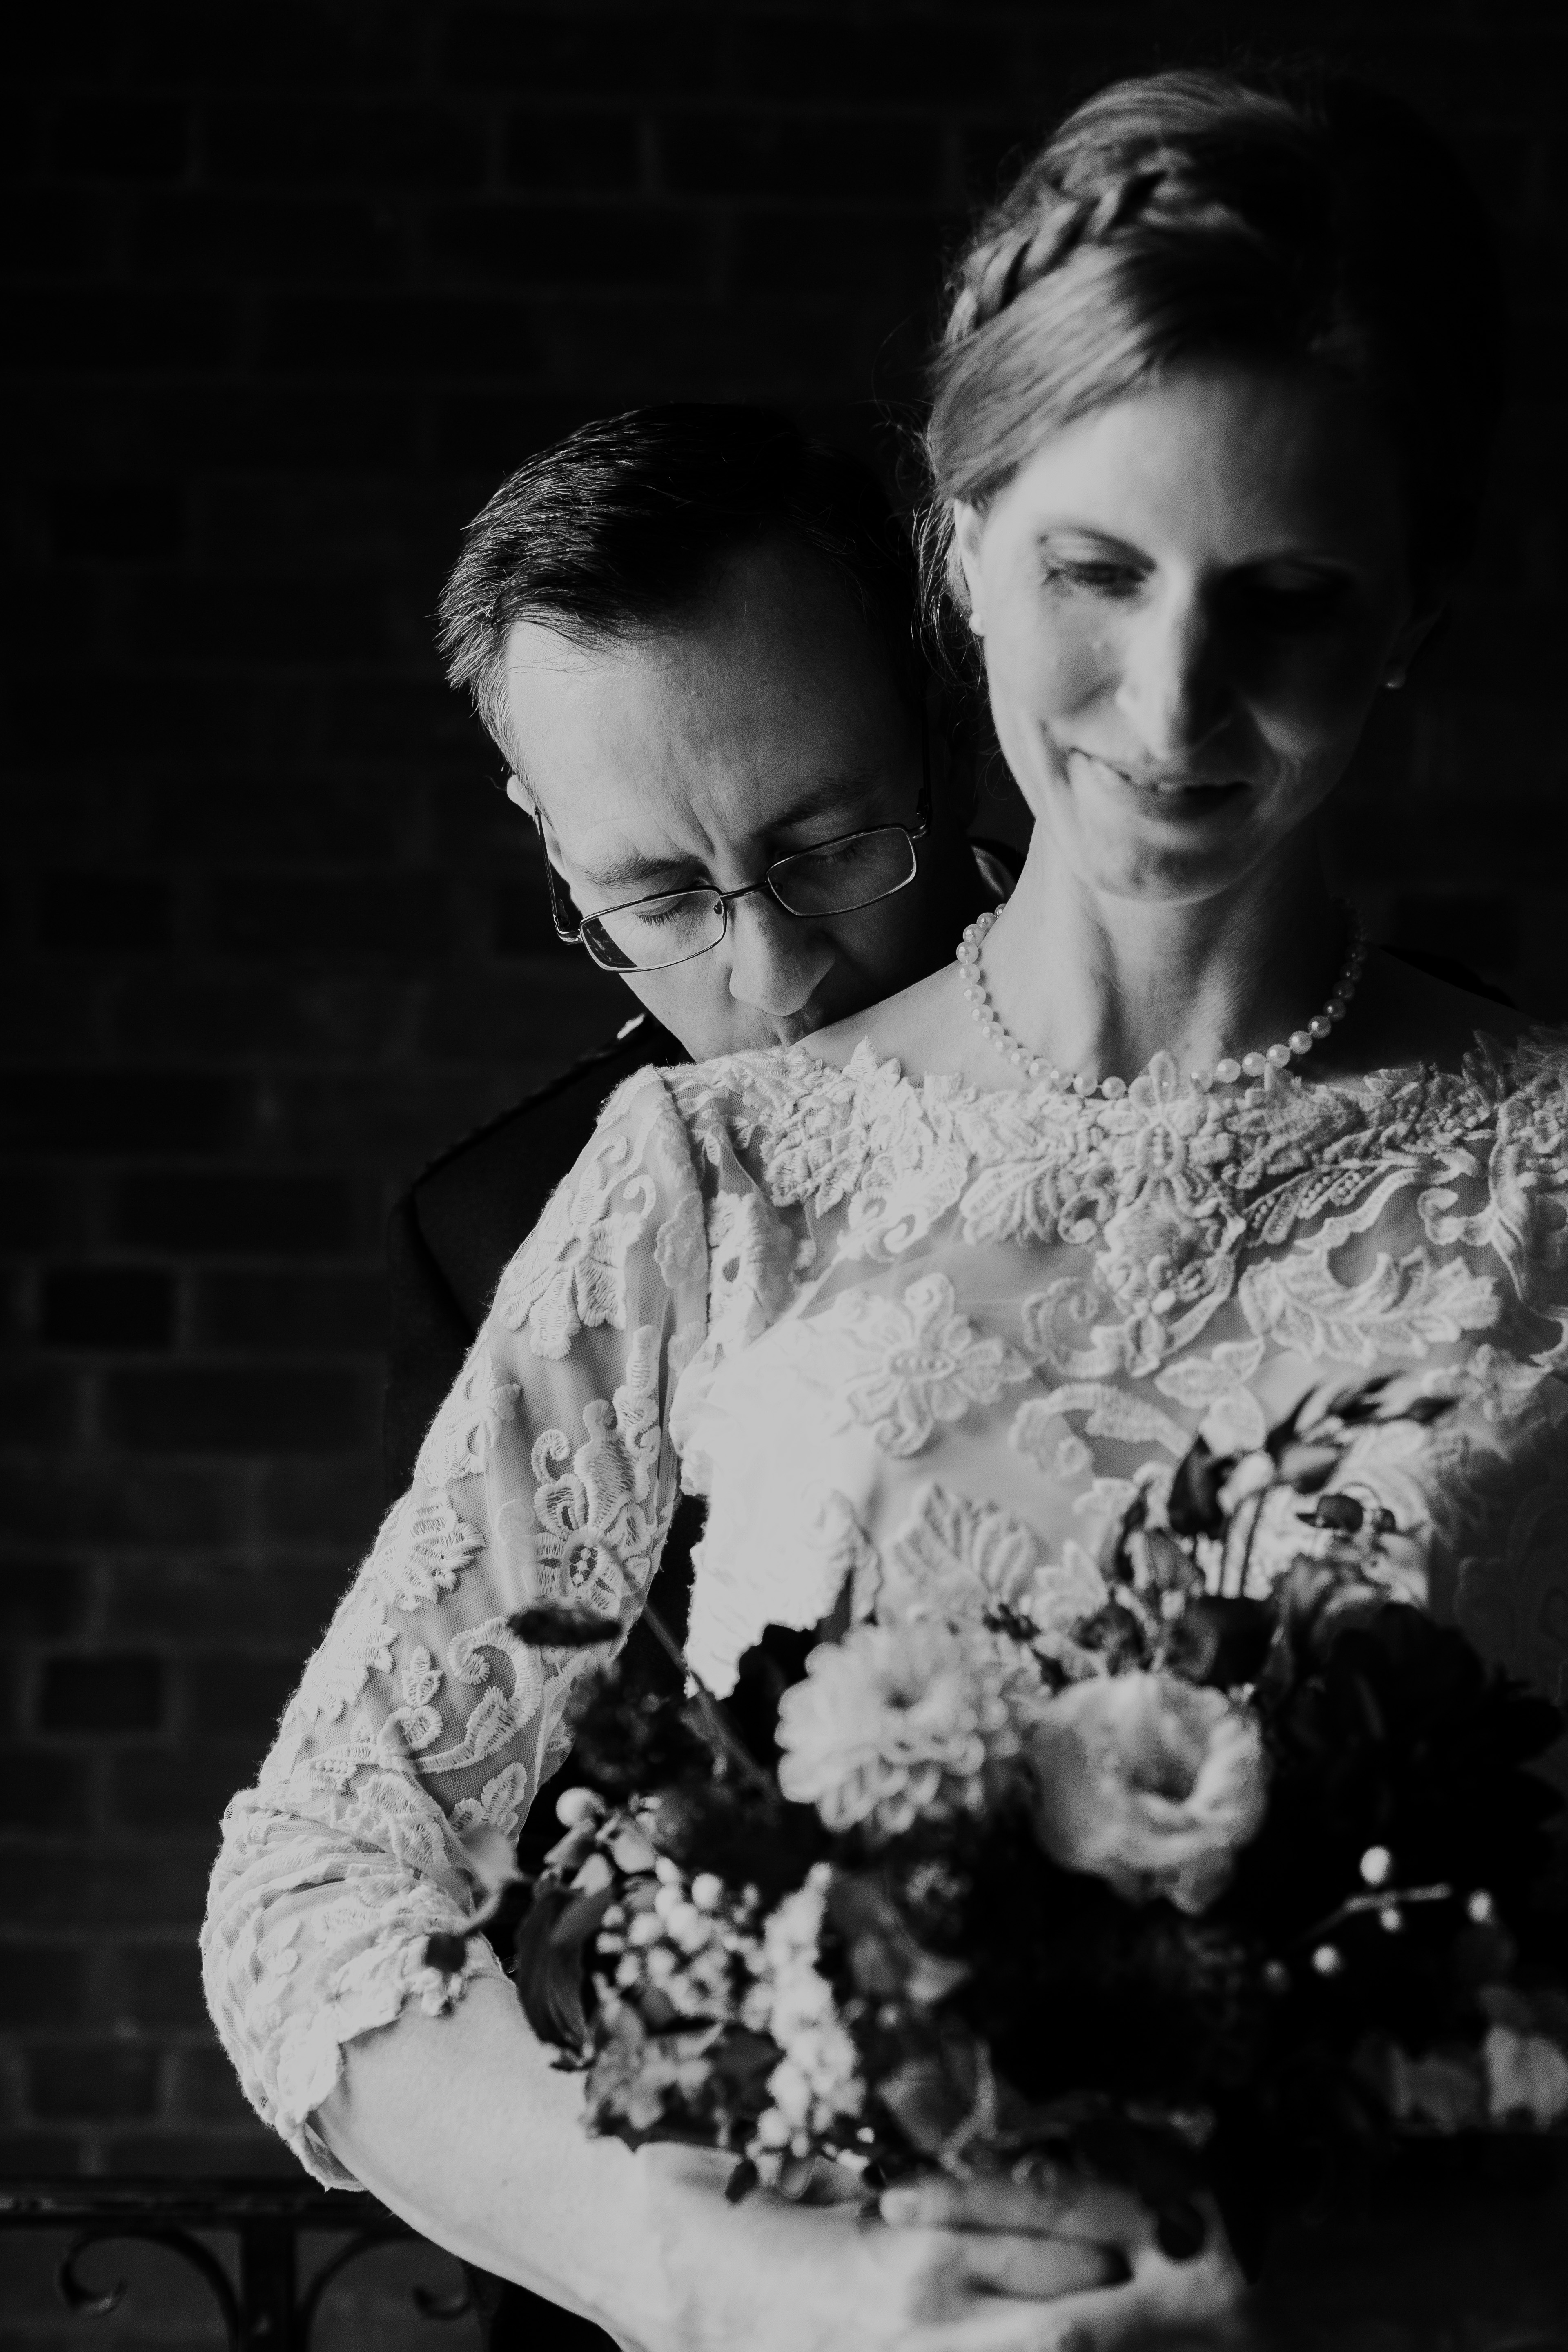 Groom kissing the bride's shoulder as she stands to show the lace detail of her wedding gown and pearl necklace at McMaster University Club